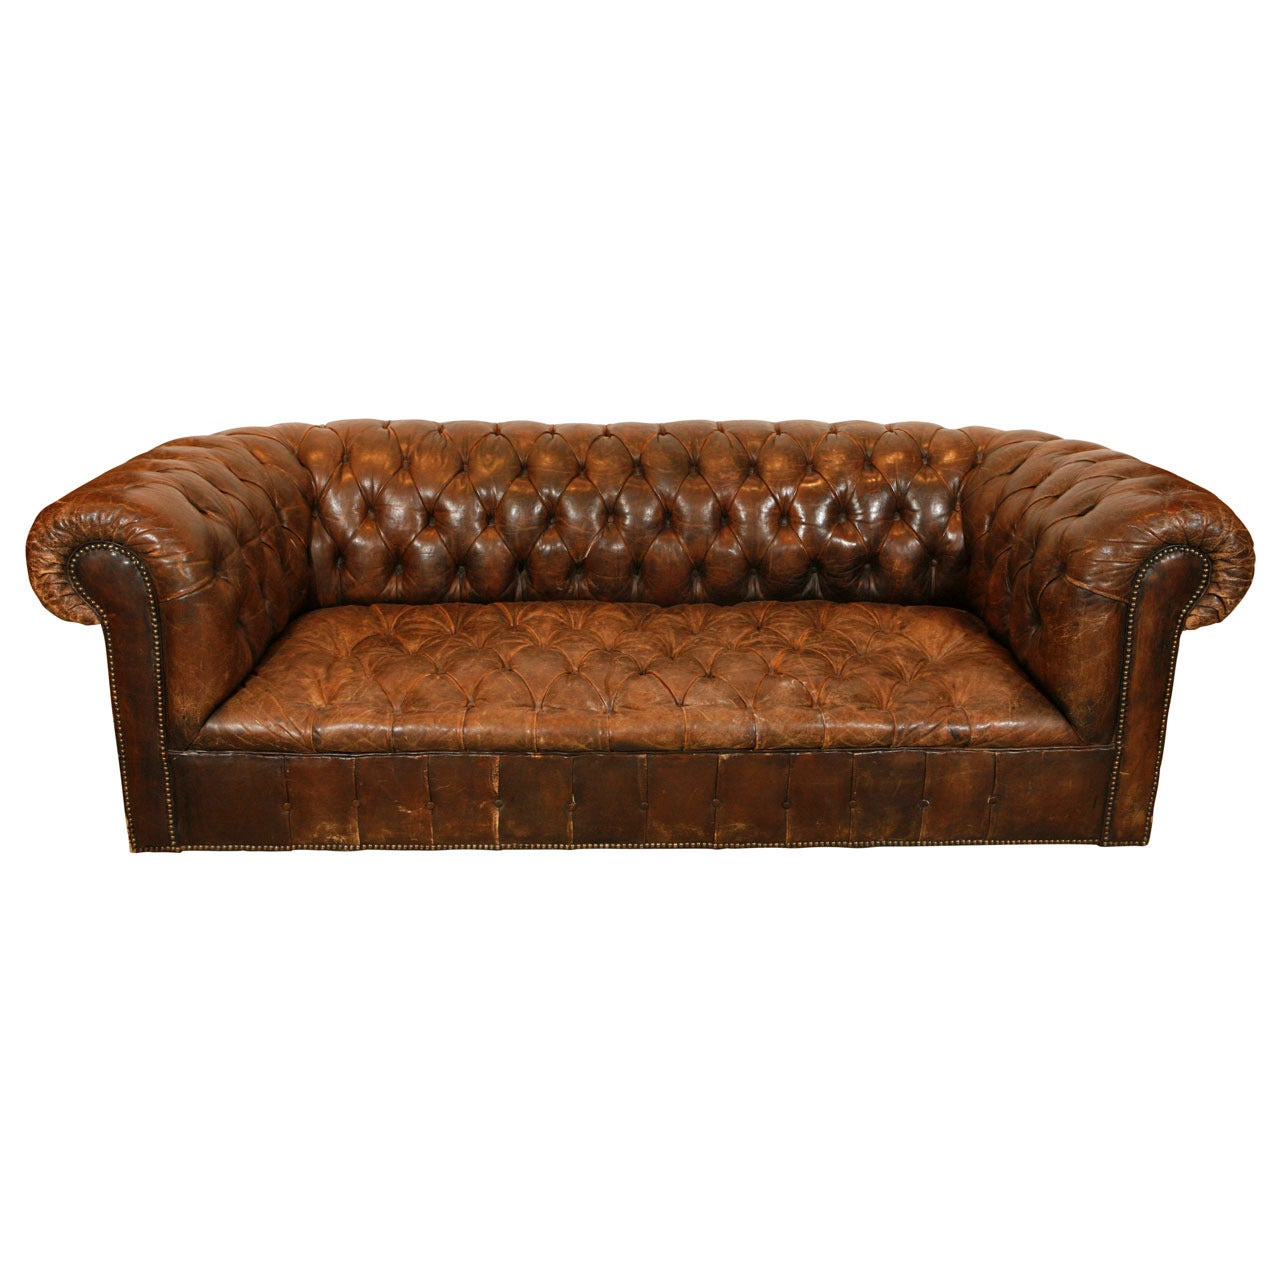 19th C. French Leather Club Sofa